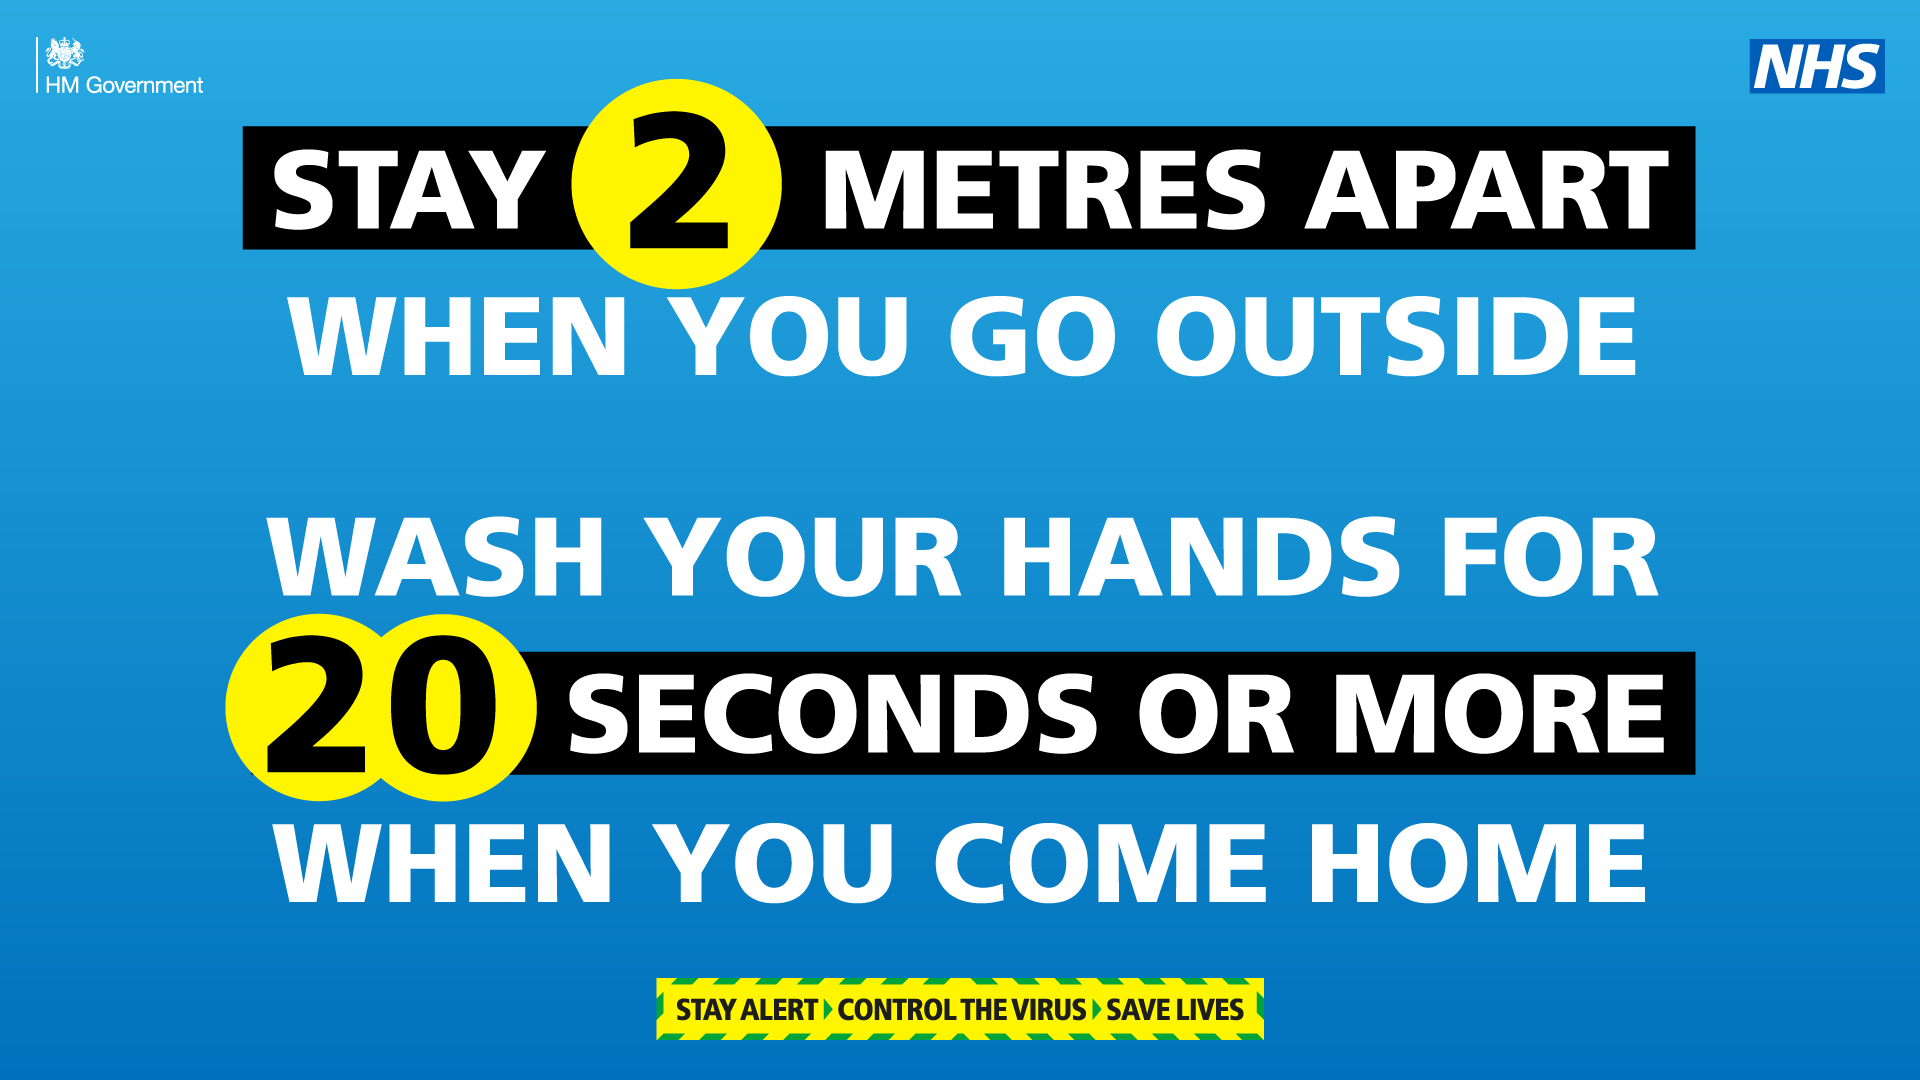 stay 2 metres apart outside wash hands for 20 sects when you get home